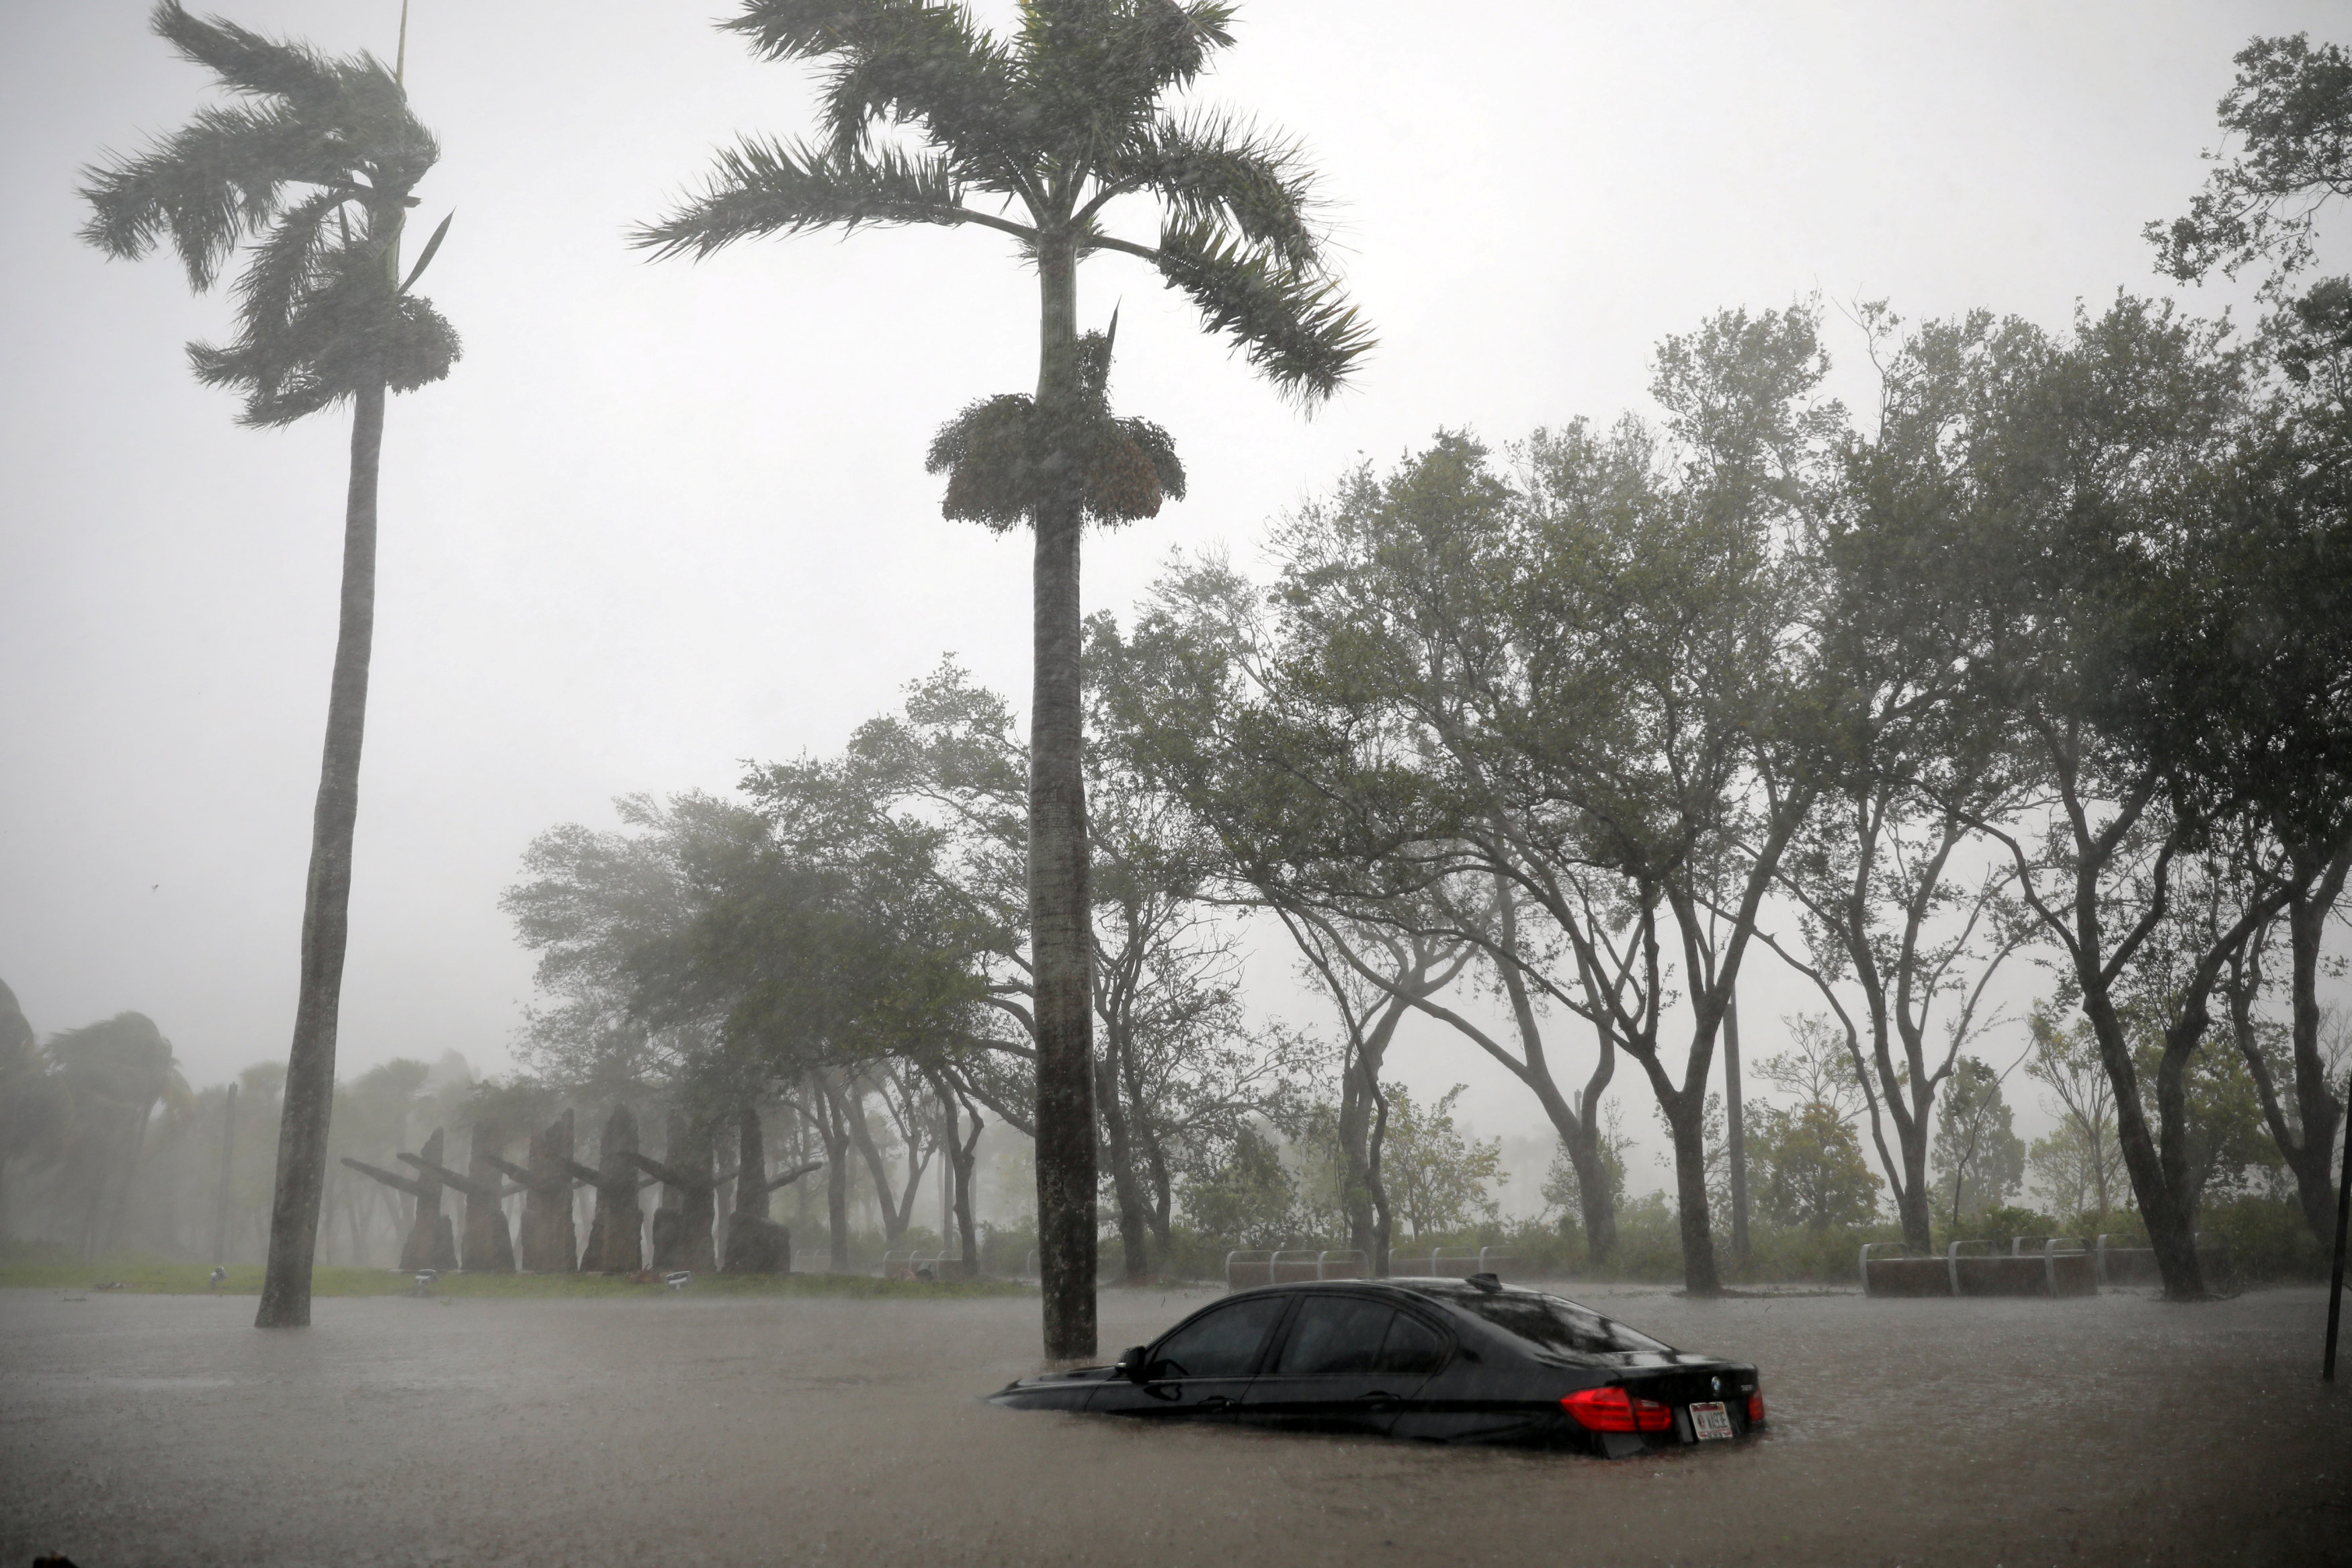 A partially submerged car is seen at a flooded area in Coconut Grove as Hurricane Irma arrives at south Florida, in Miami, Florida, U.S., September 10, 2017.